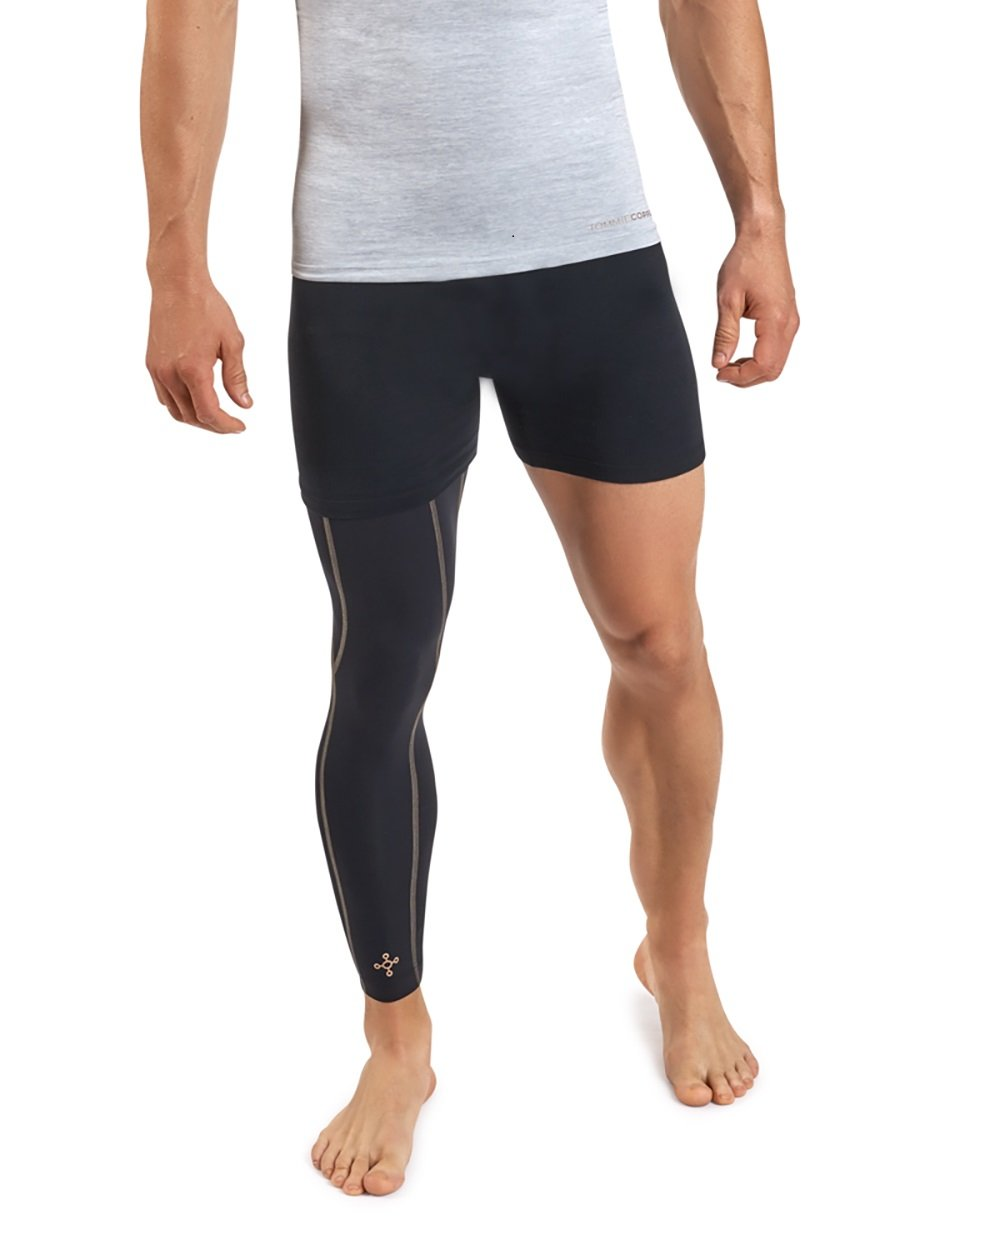 Tommie Copper Men's Performance Full Leg Sleeves 2.0, Small, Black